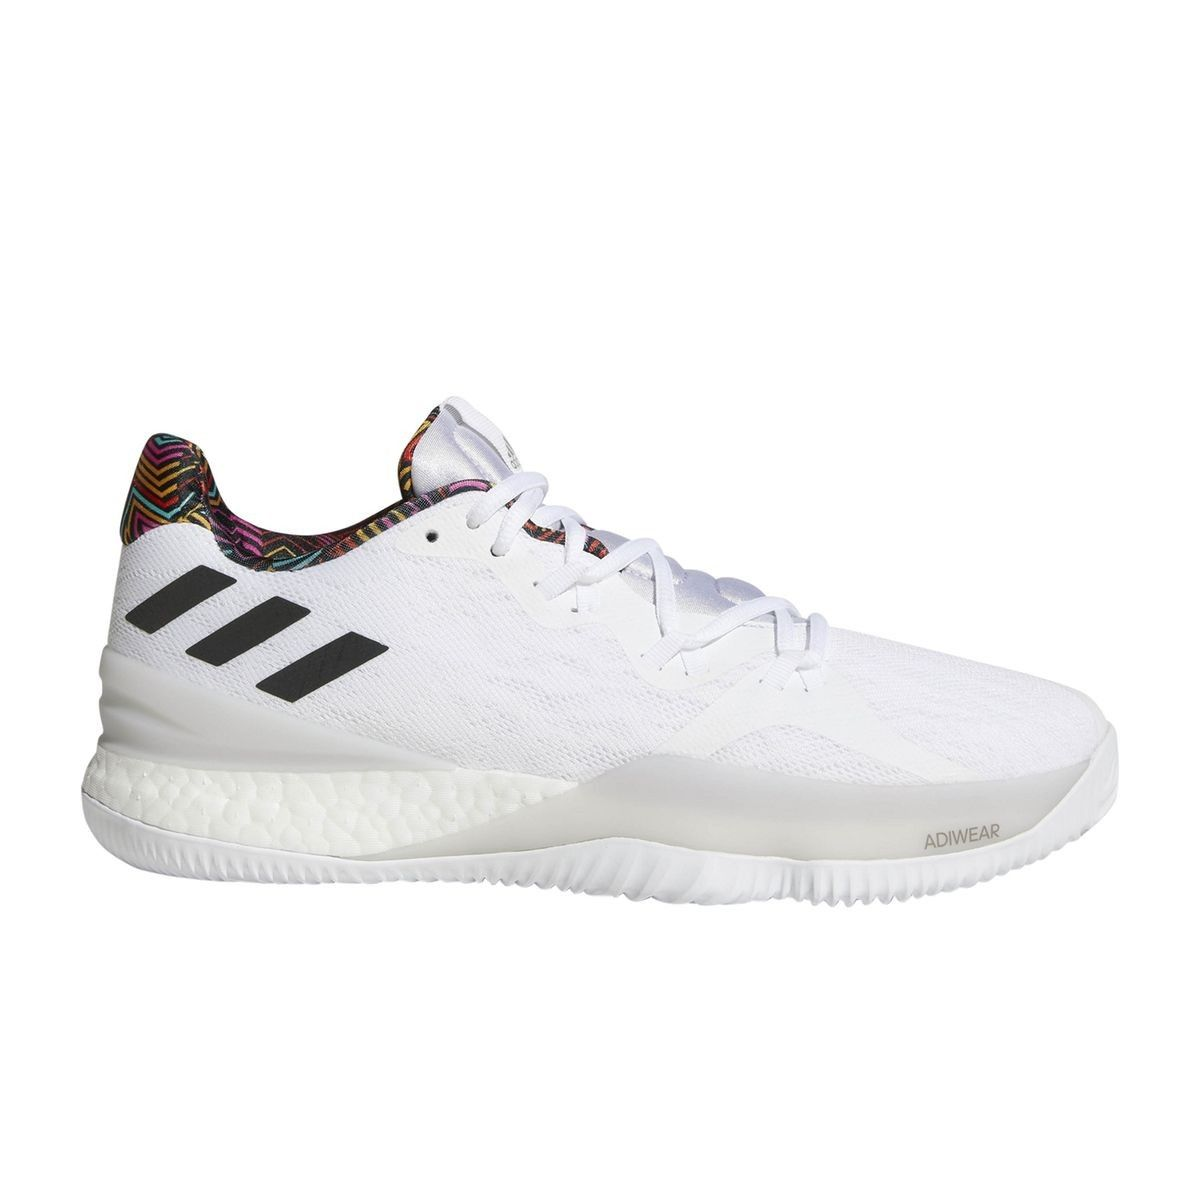 Chaussure De Basket Homme Promo Adidas Crazylight Boost